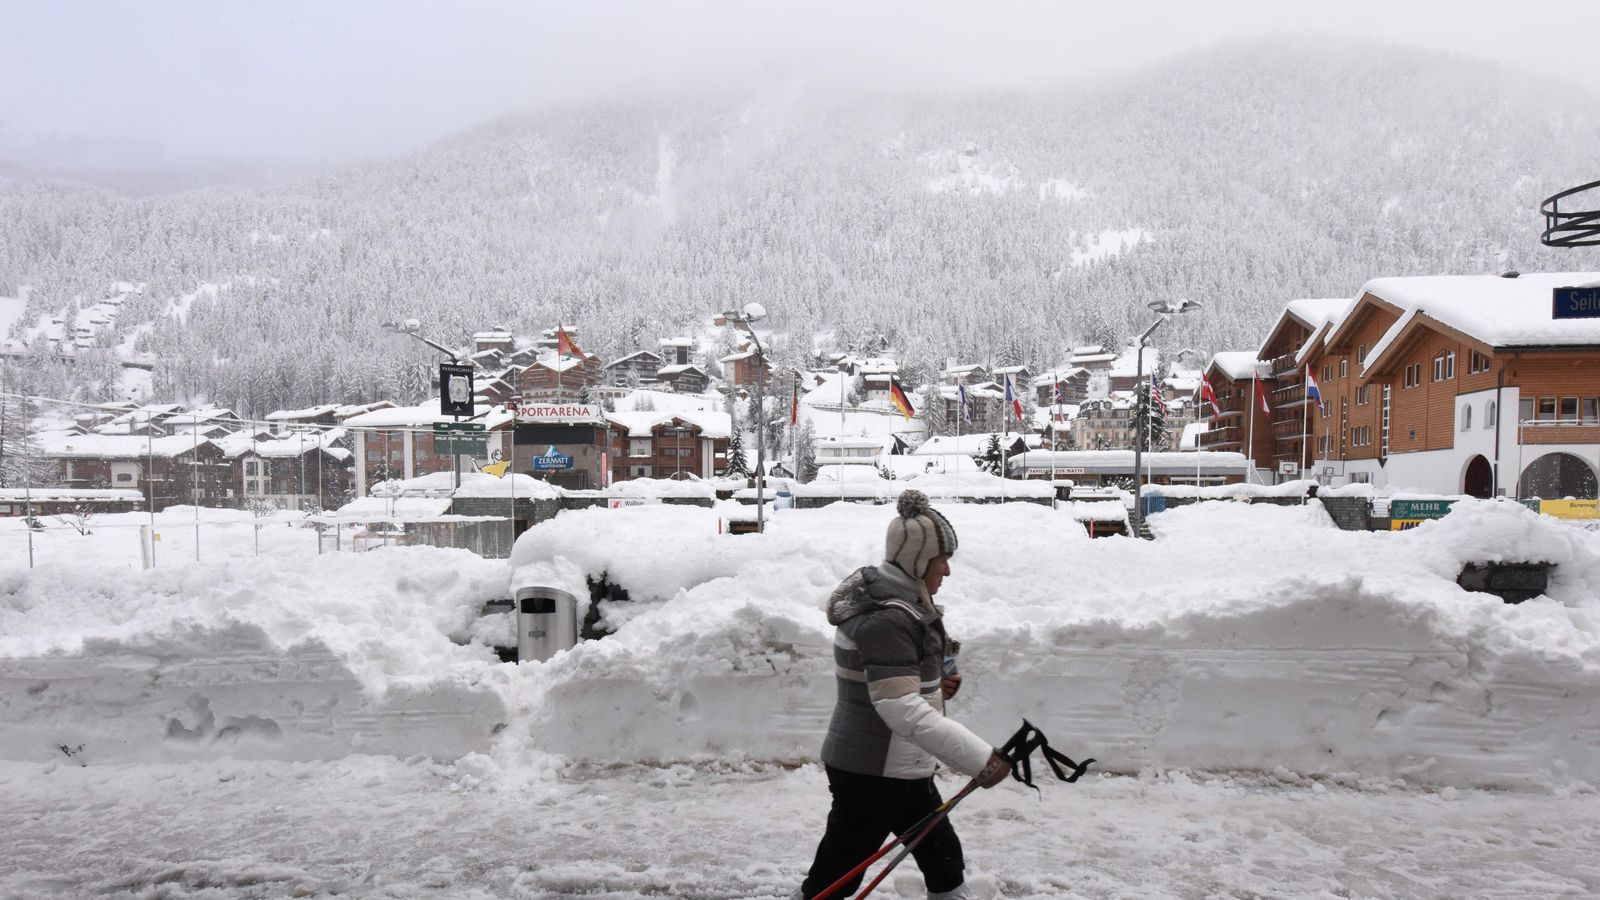 13 000 Holidaymakers Stranded By Alps Snow